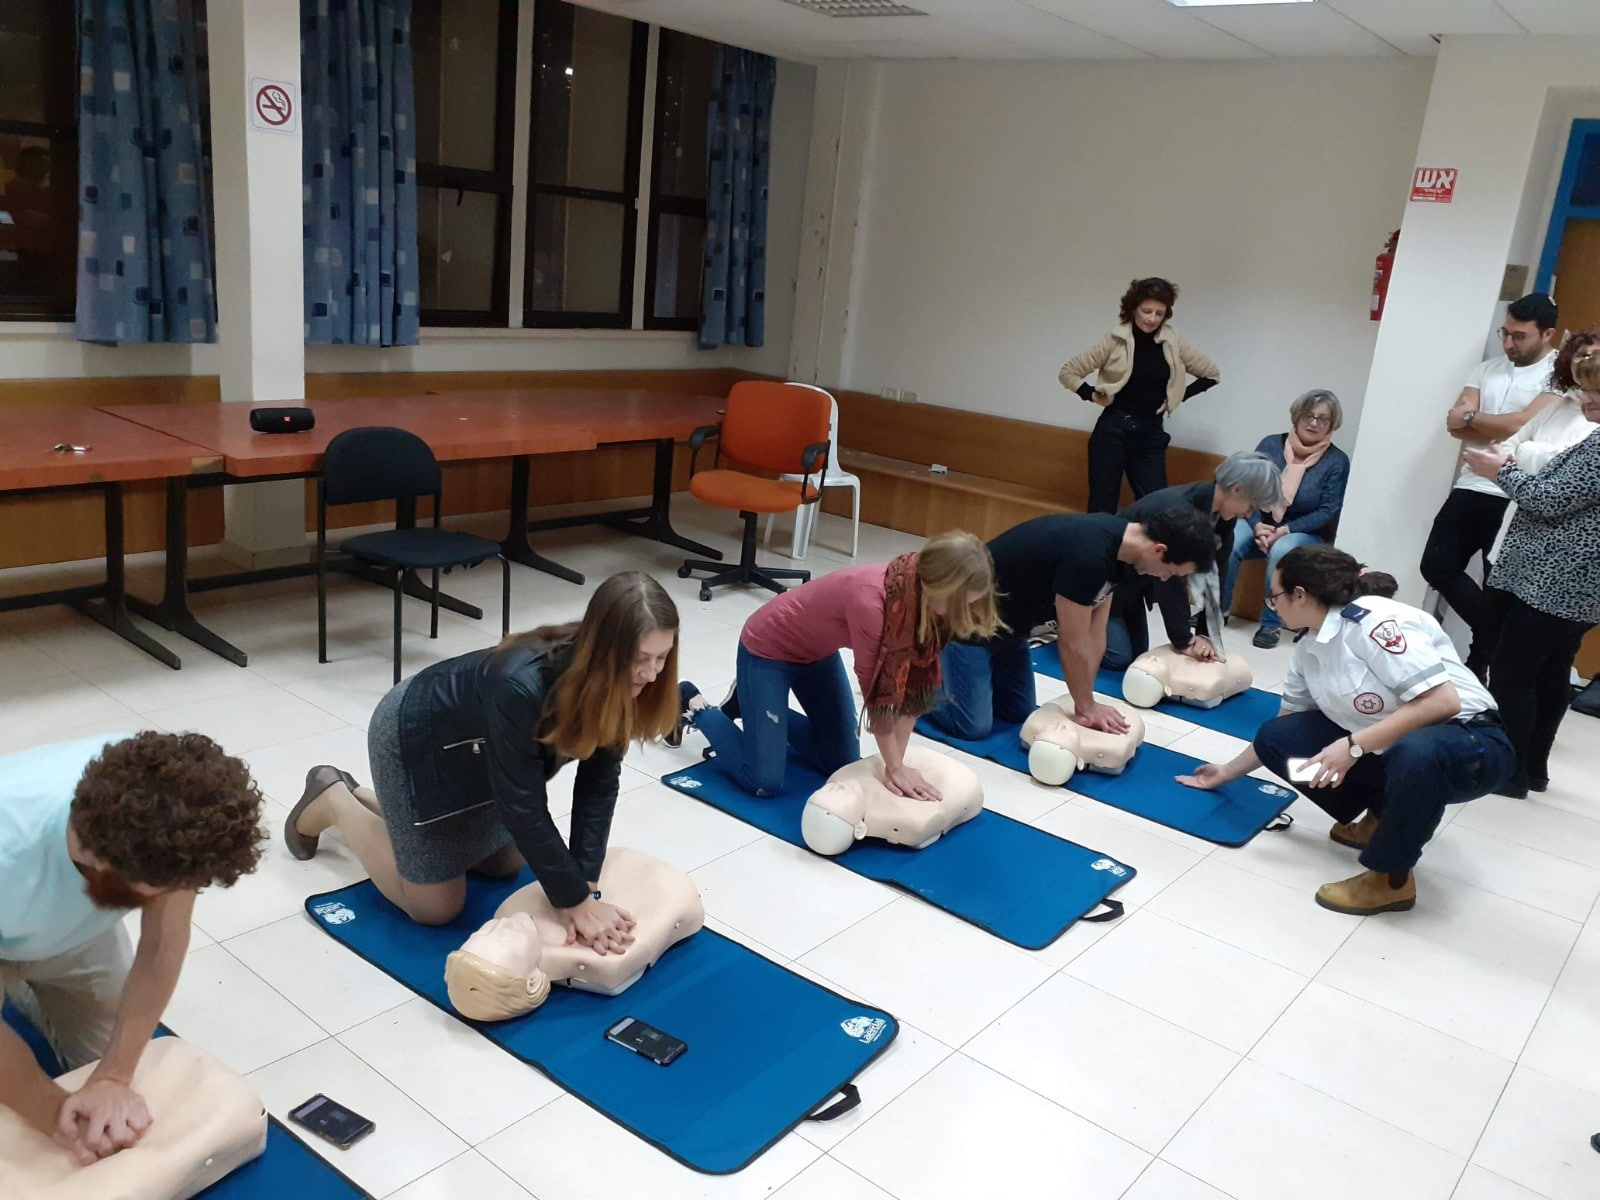 CPR Course In March - Cancelled